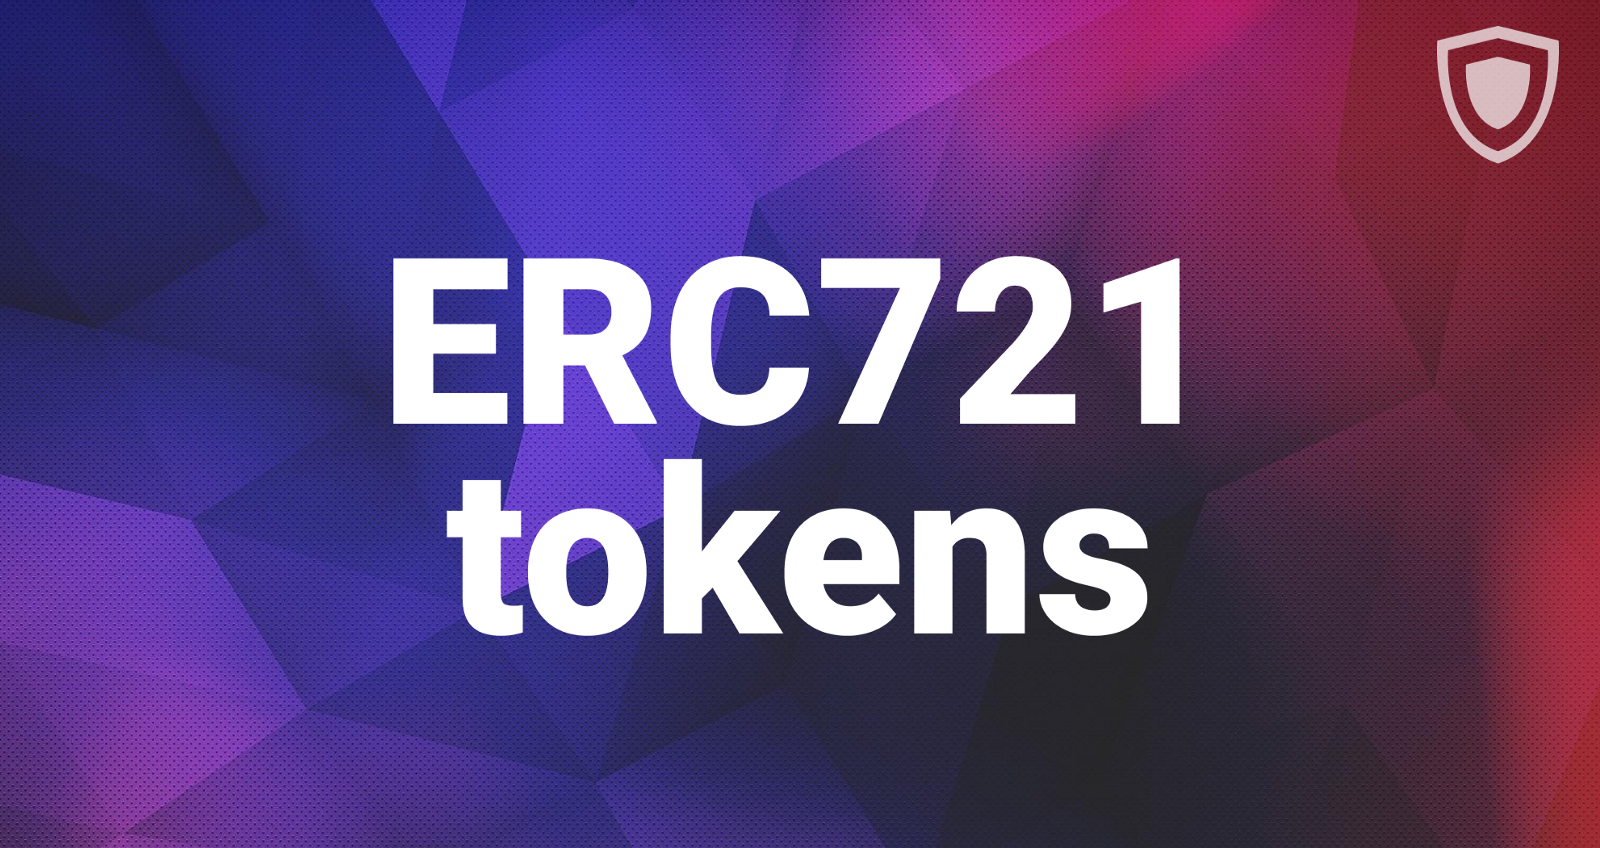 /what-are-erc721-standard-tokens-3624adcc3e54 feature image